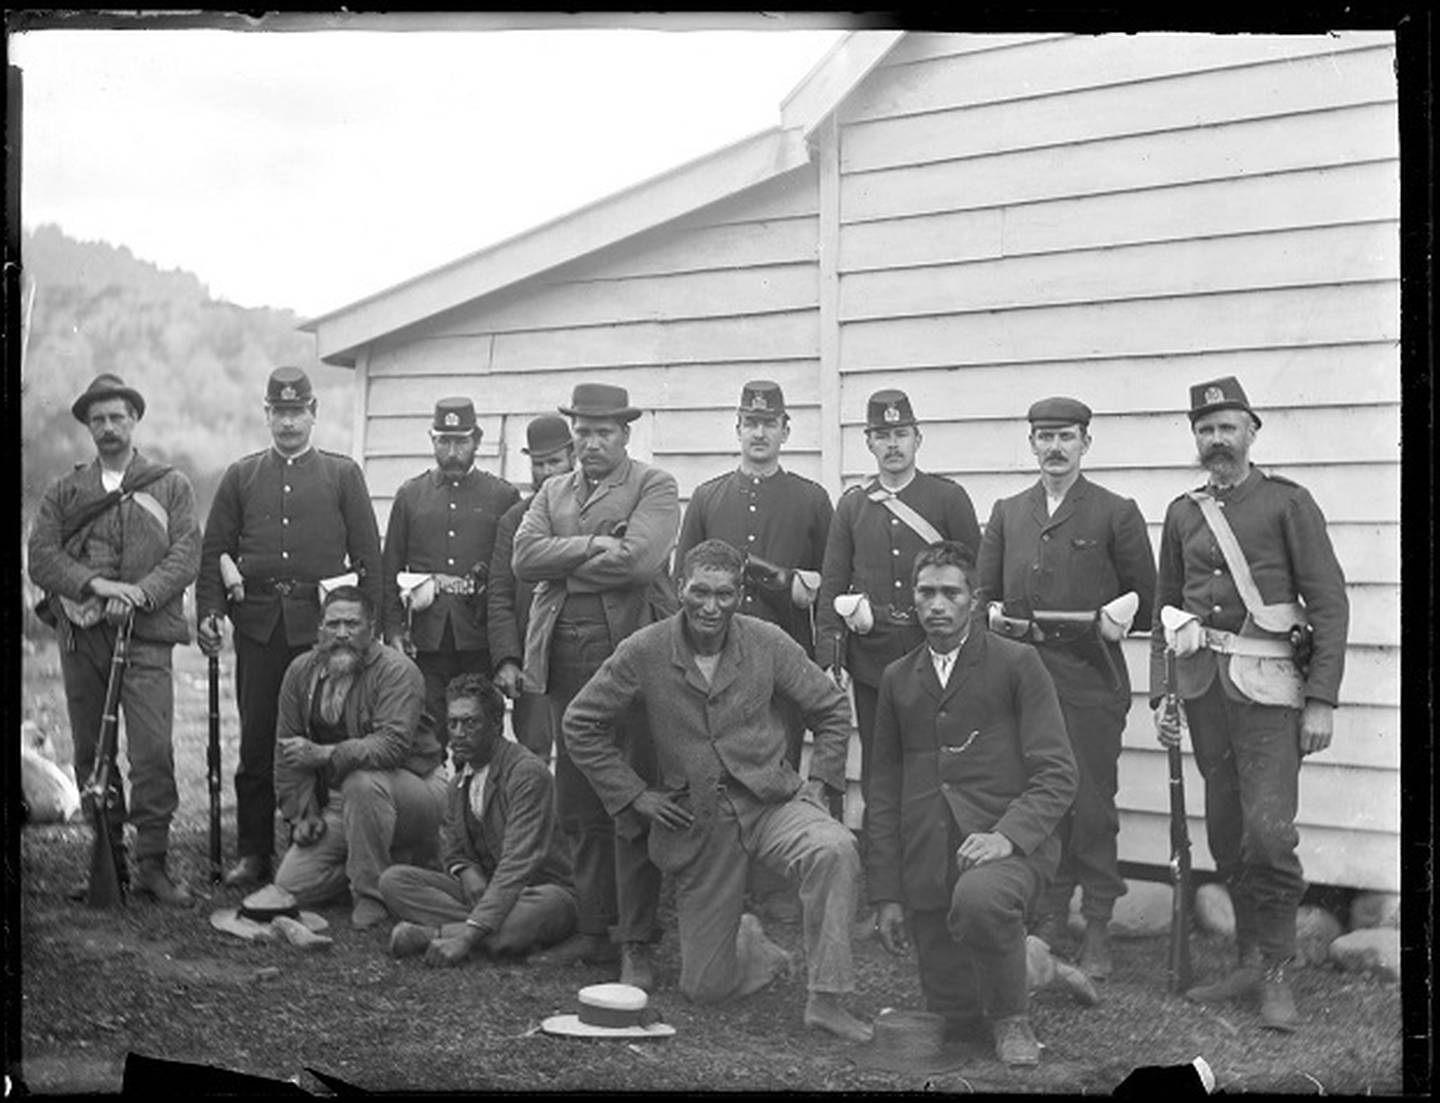 Māori dog-tax resisters, including leader Hone Toia (centre, standing), following their surrender at Waima in Northland in 1898. Photo / Charlie Dawes, Auckland Libraries